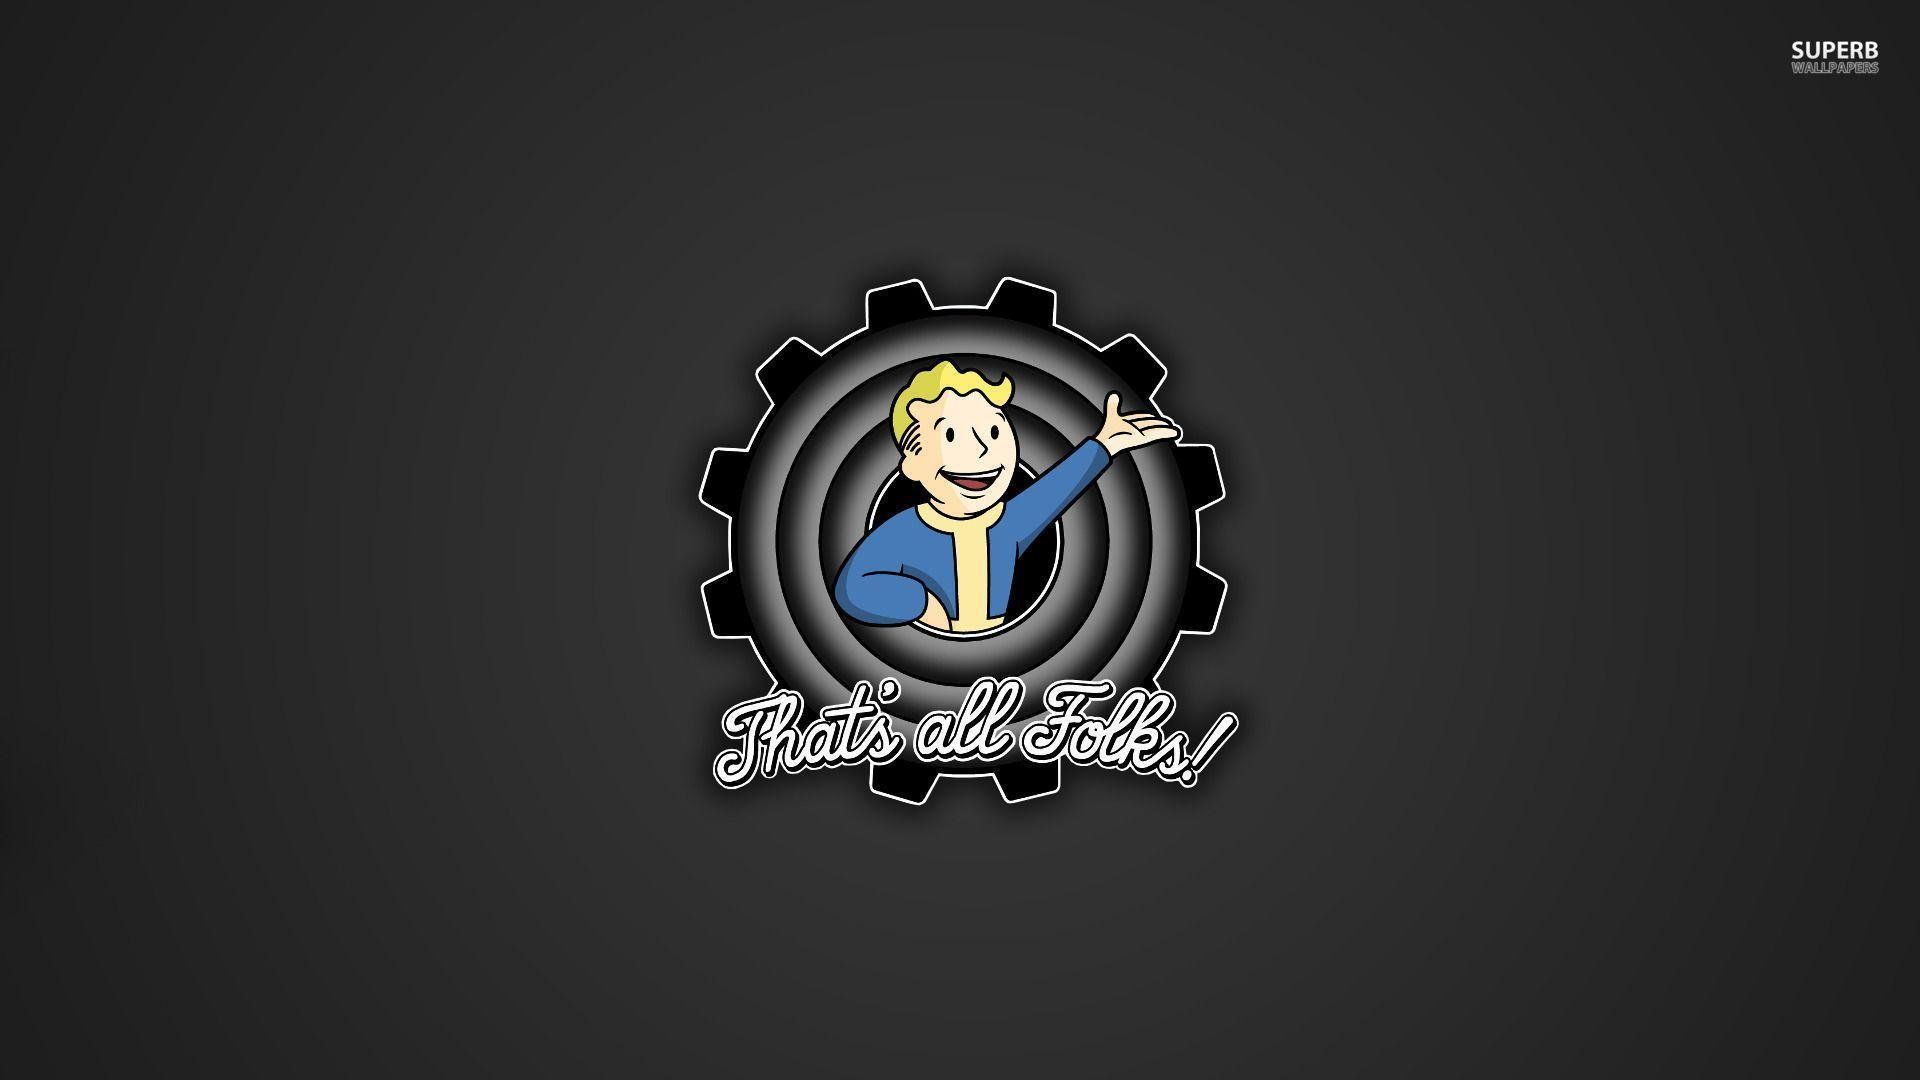 Fall Out Boy Logo Iphone Wallpaper Vault Boy Wallpapers Wallpaper Cave